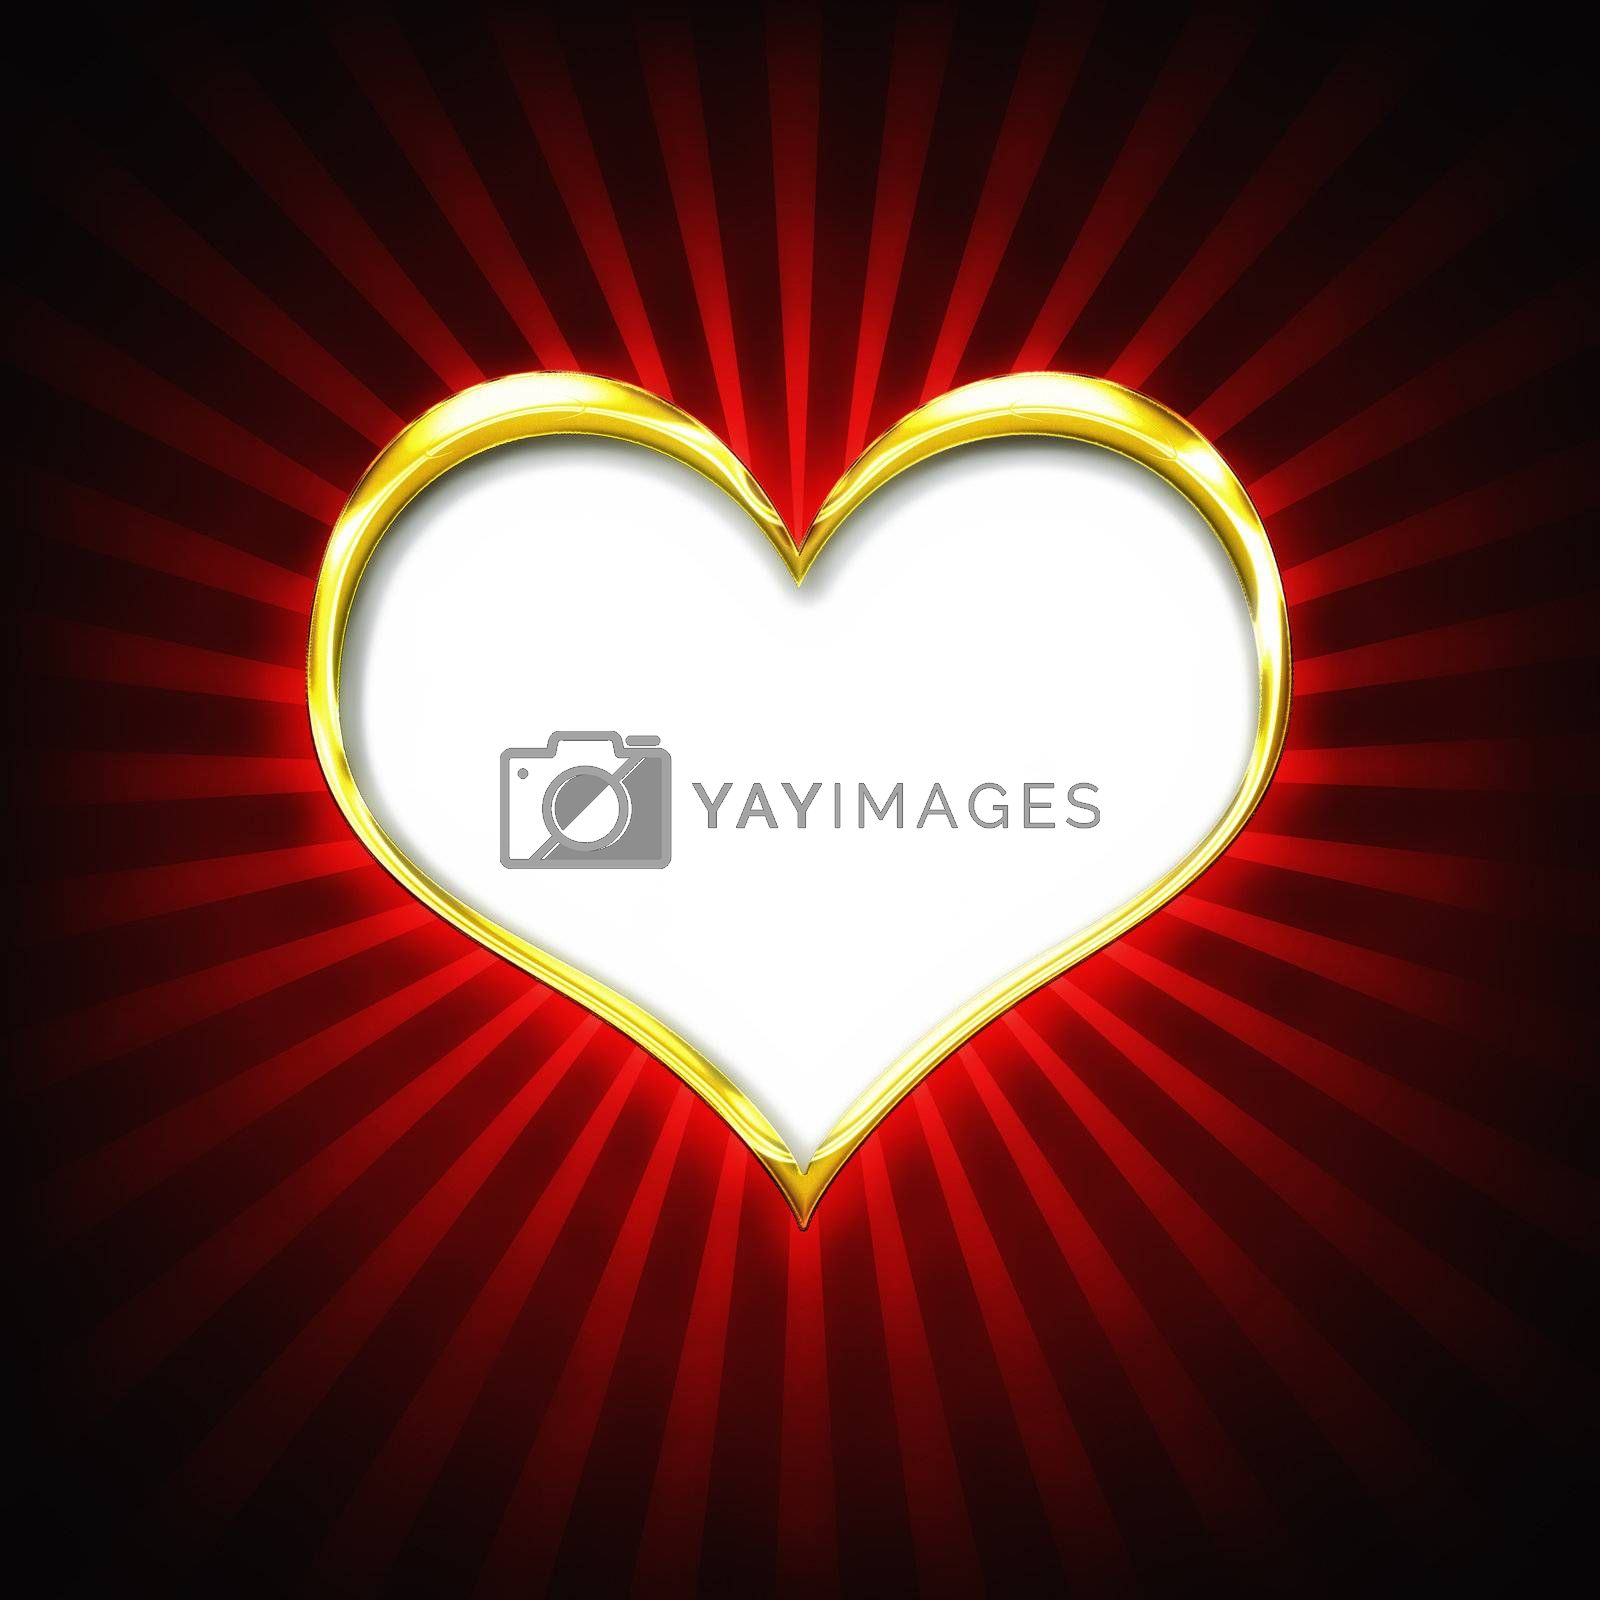 Valenties Day Card with a big golden heart on a red background